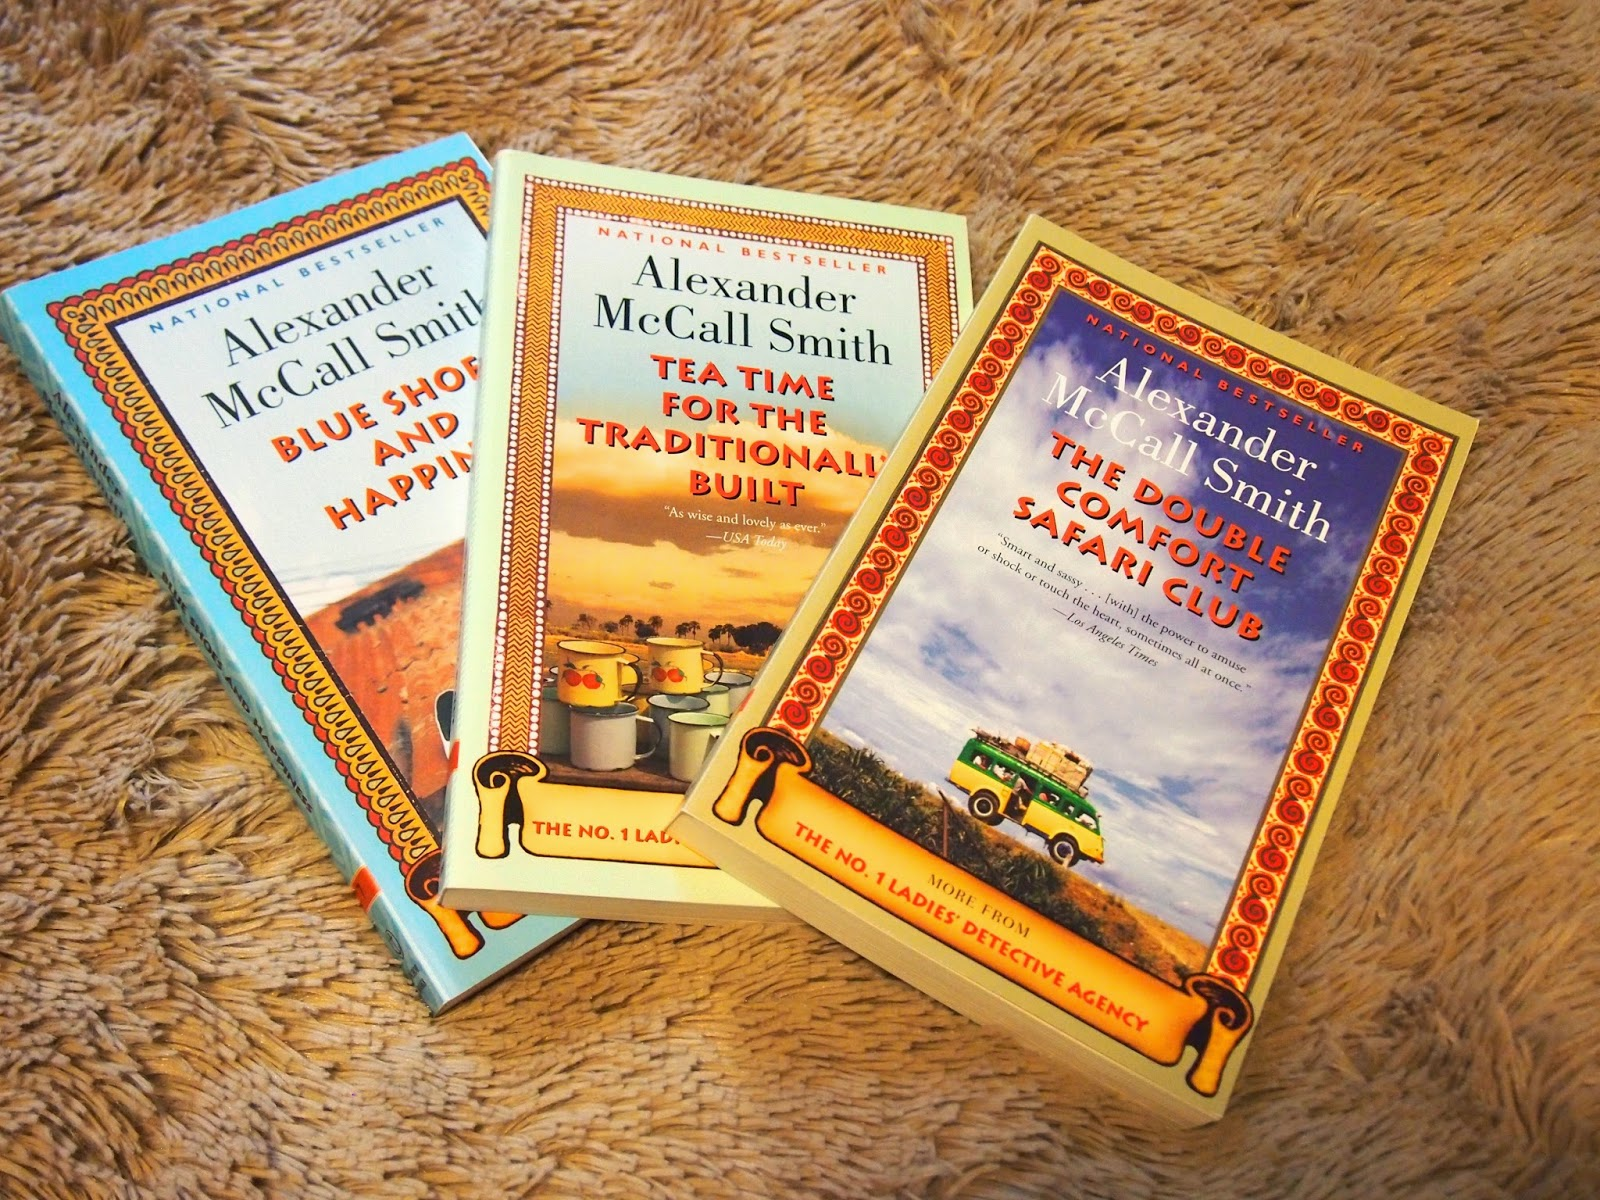 Alexander McCall Smith books